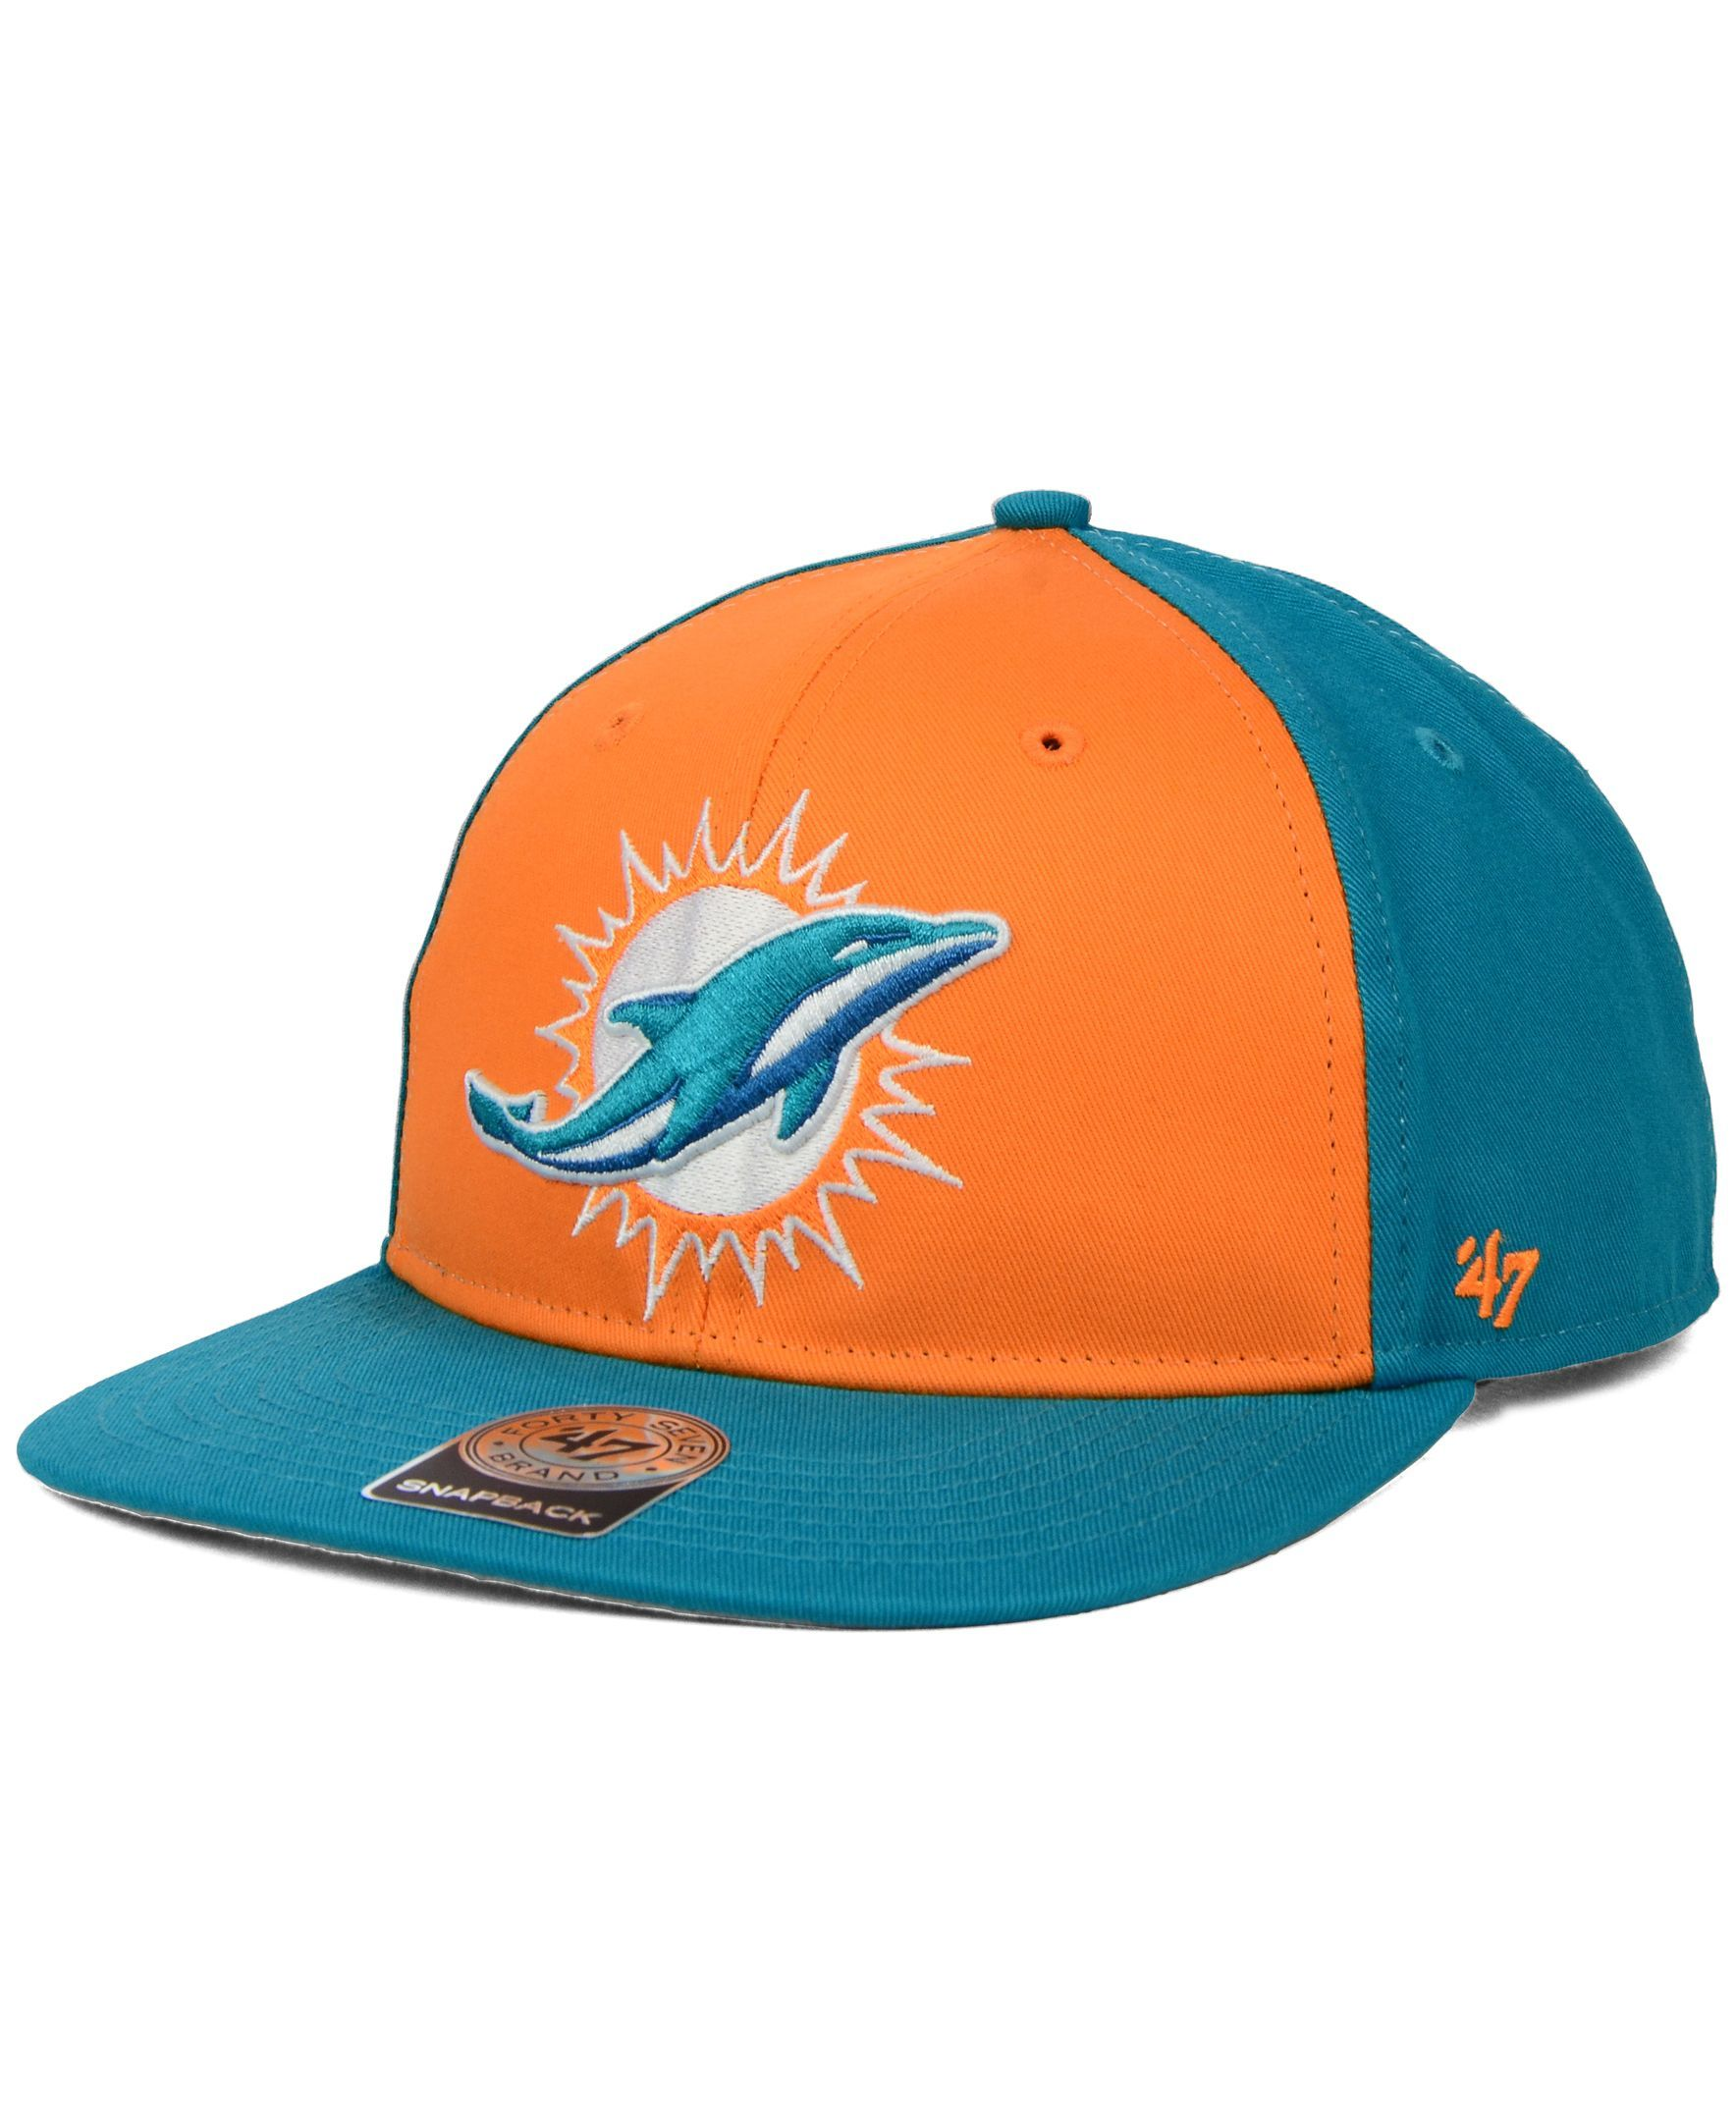 order miami dolphins new era 2018 official nfl kids sideline road 59fifty  cap 2263e 5c180  sale 47 brand kids miami dolphins kinnick snapback cap.  f7b4a ... 66f33480e